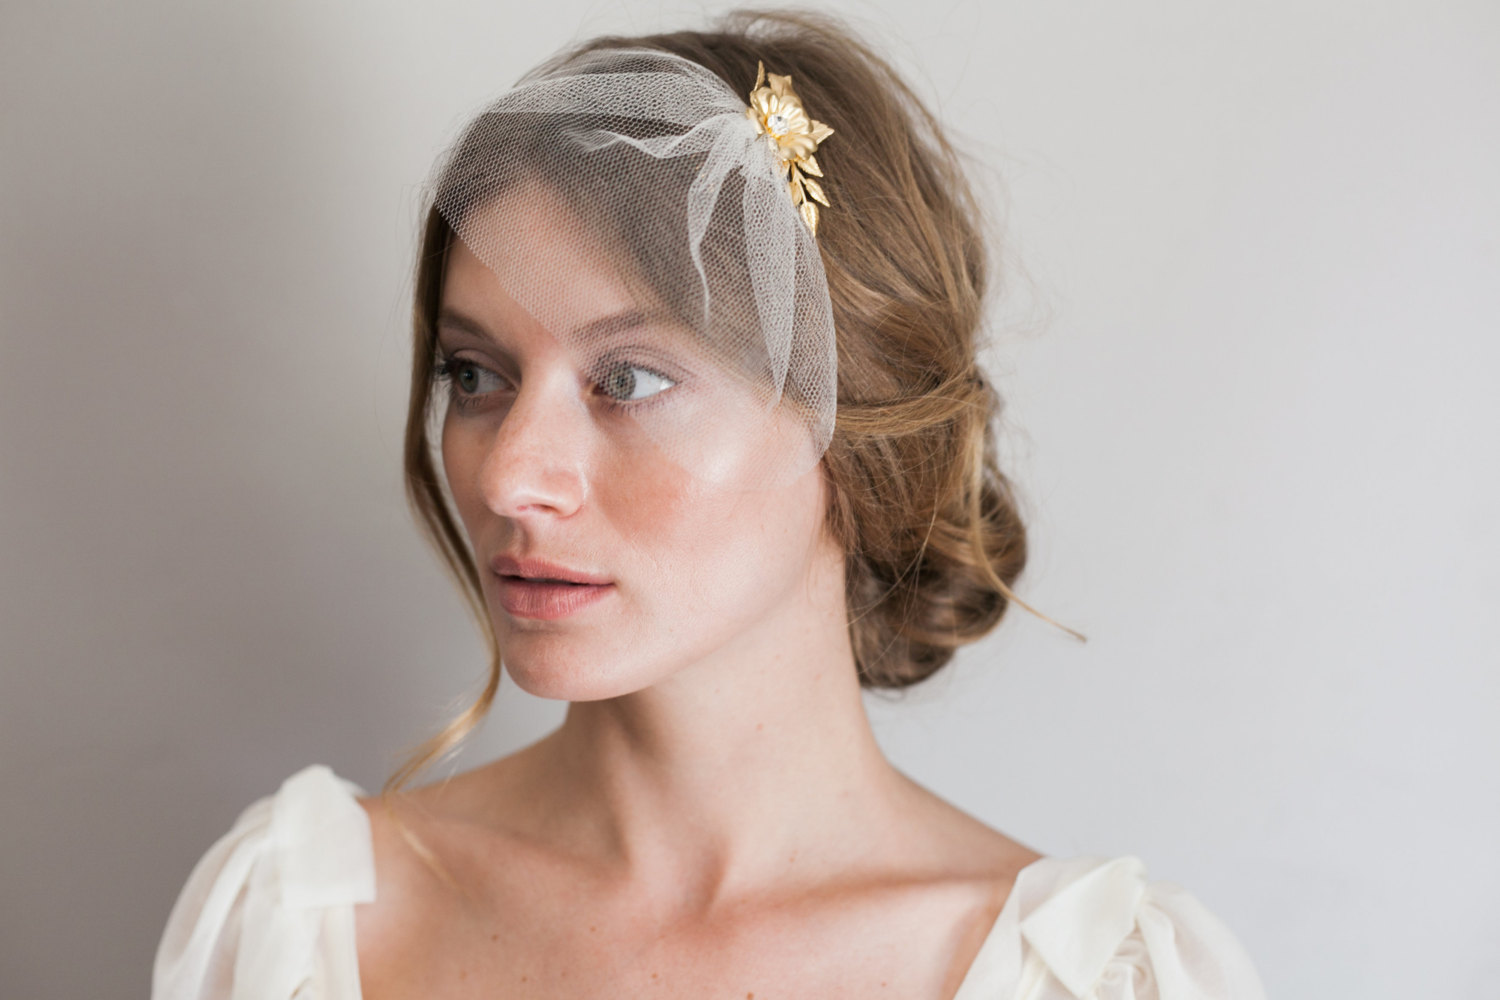 Mignonne Handmade's 2014 Bridal Accessories - Mini Silk Birdcage Veil